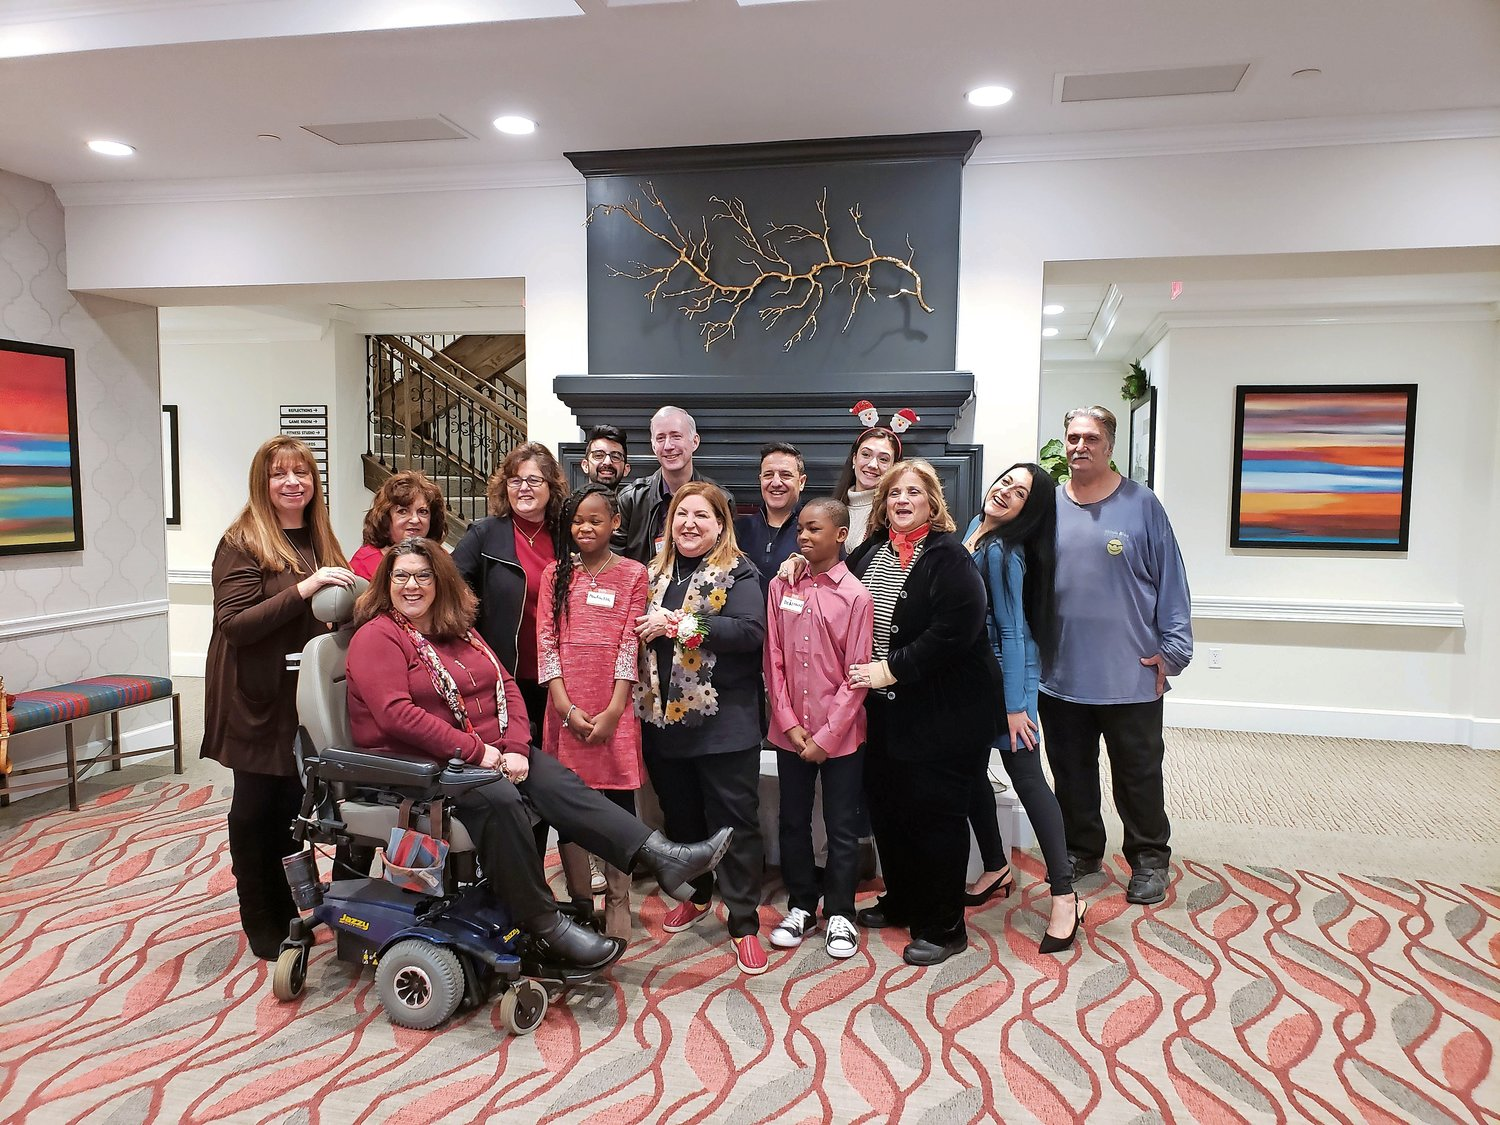 Former Snapple spokeswoman Wendy Kaufman met with the Long Island Breakfast Club at the Bristal Assisted Living in Garden City on Dec. 15.